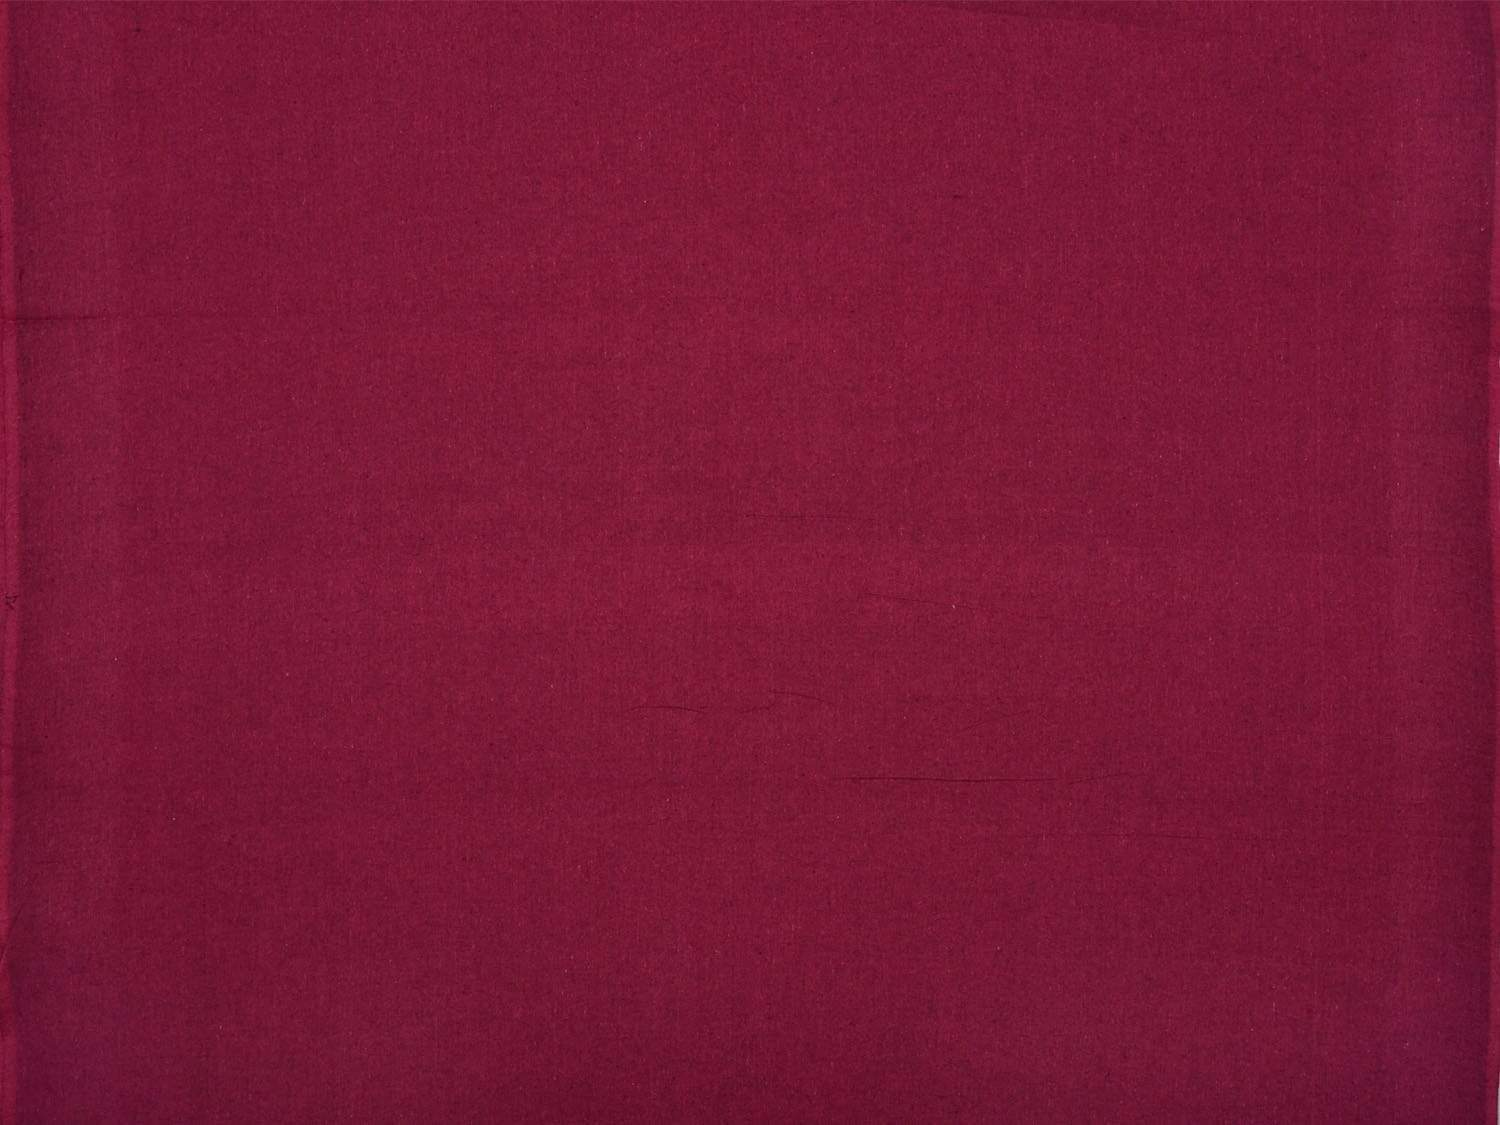 Purple Cotton Handloom Fabric Material with Plain Design f0151